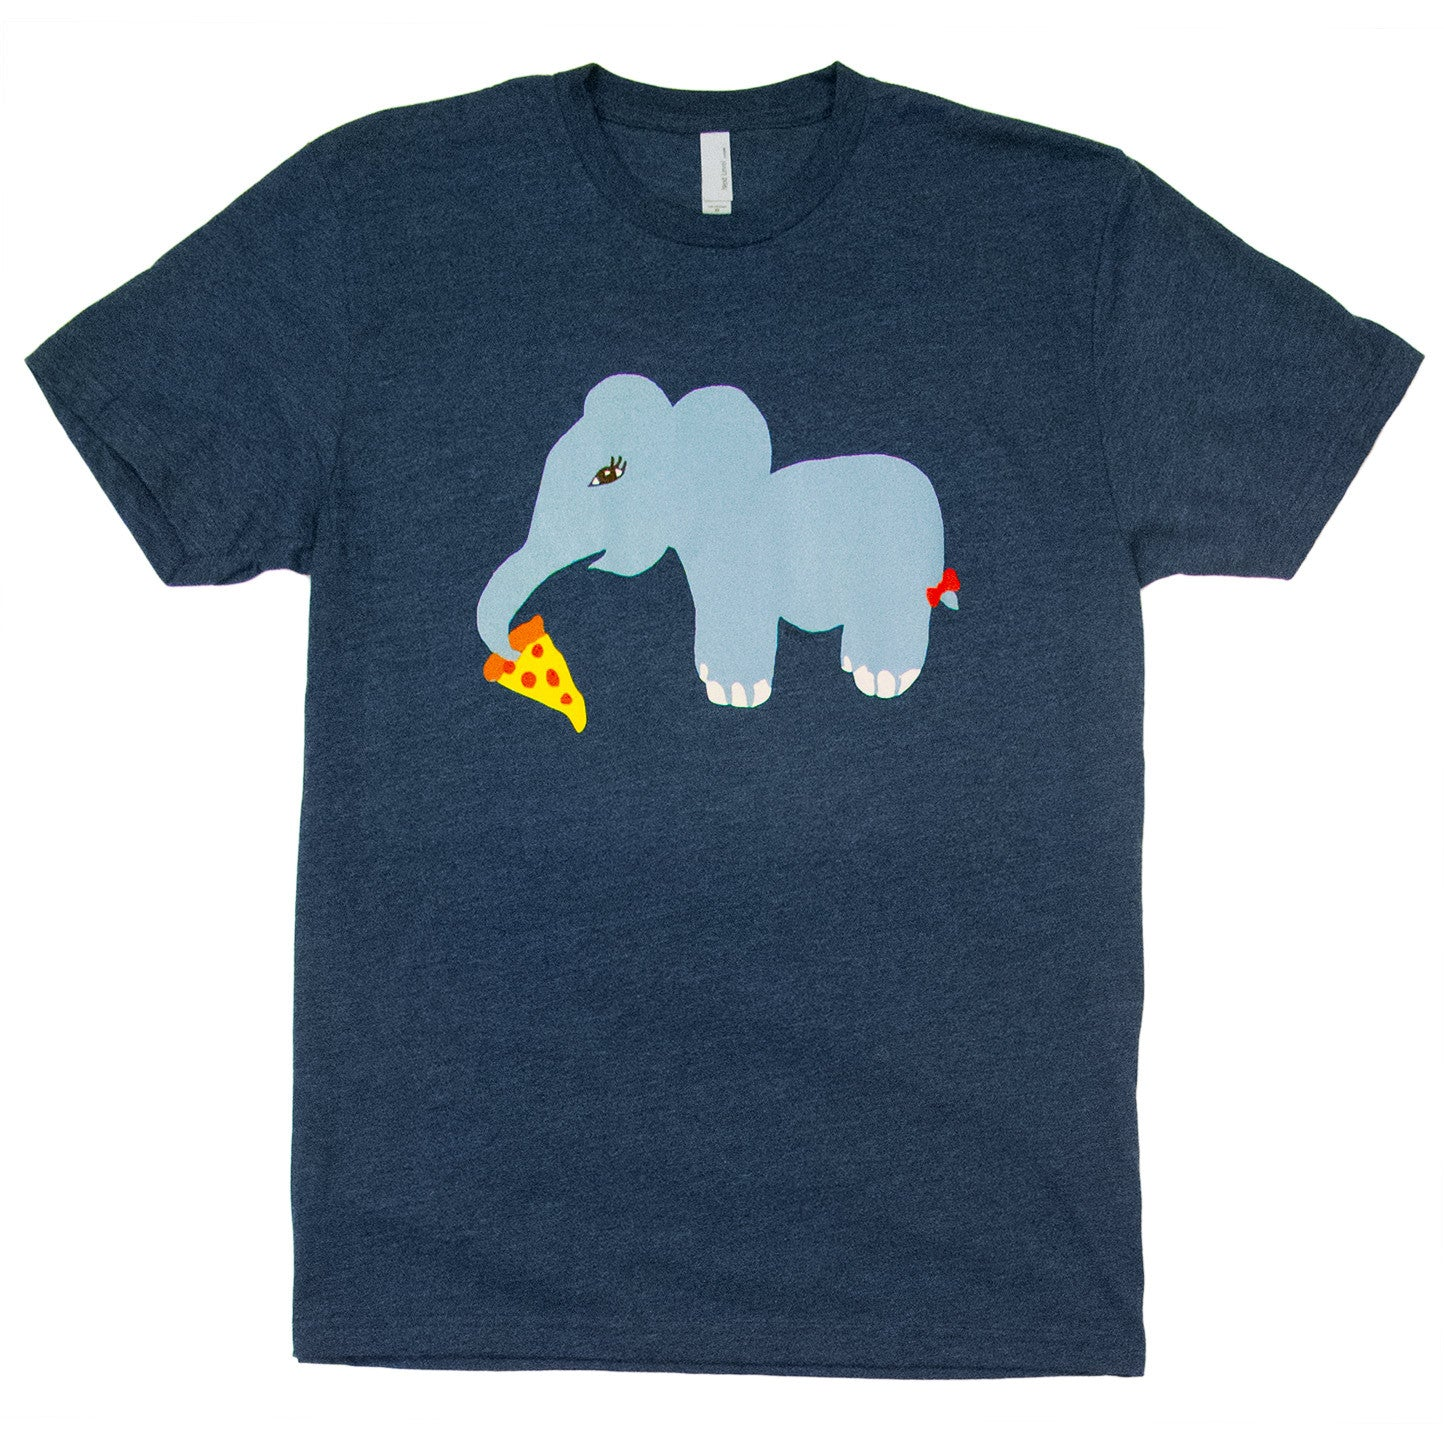 Elephant Pizza by Stella, 8th grade - Adult T-shirt - Rightside Shirts - 1